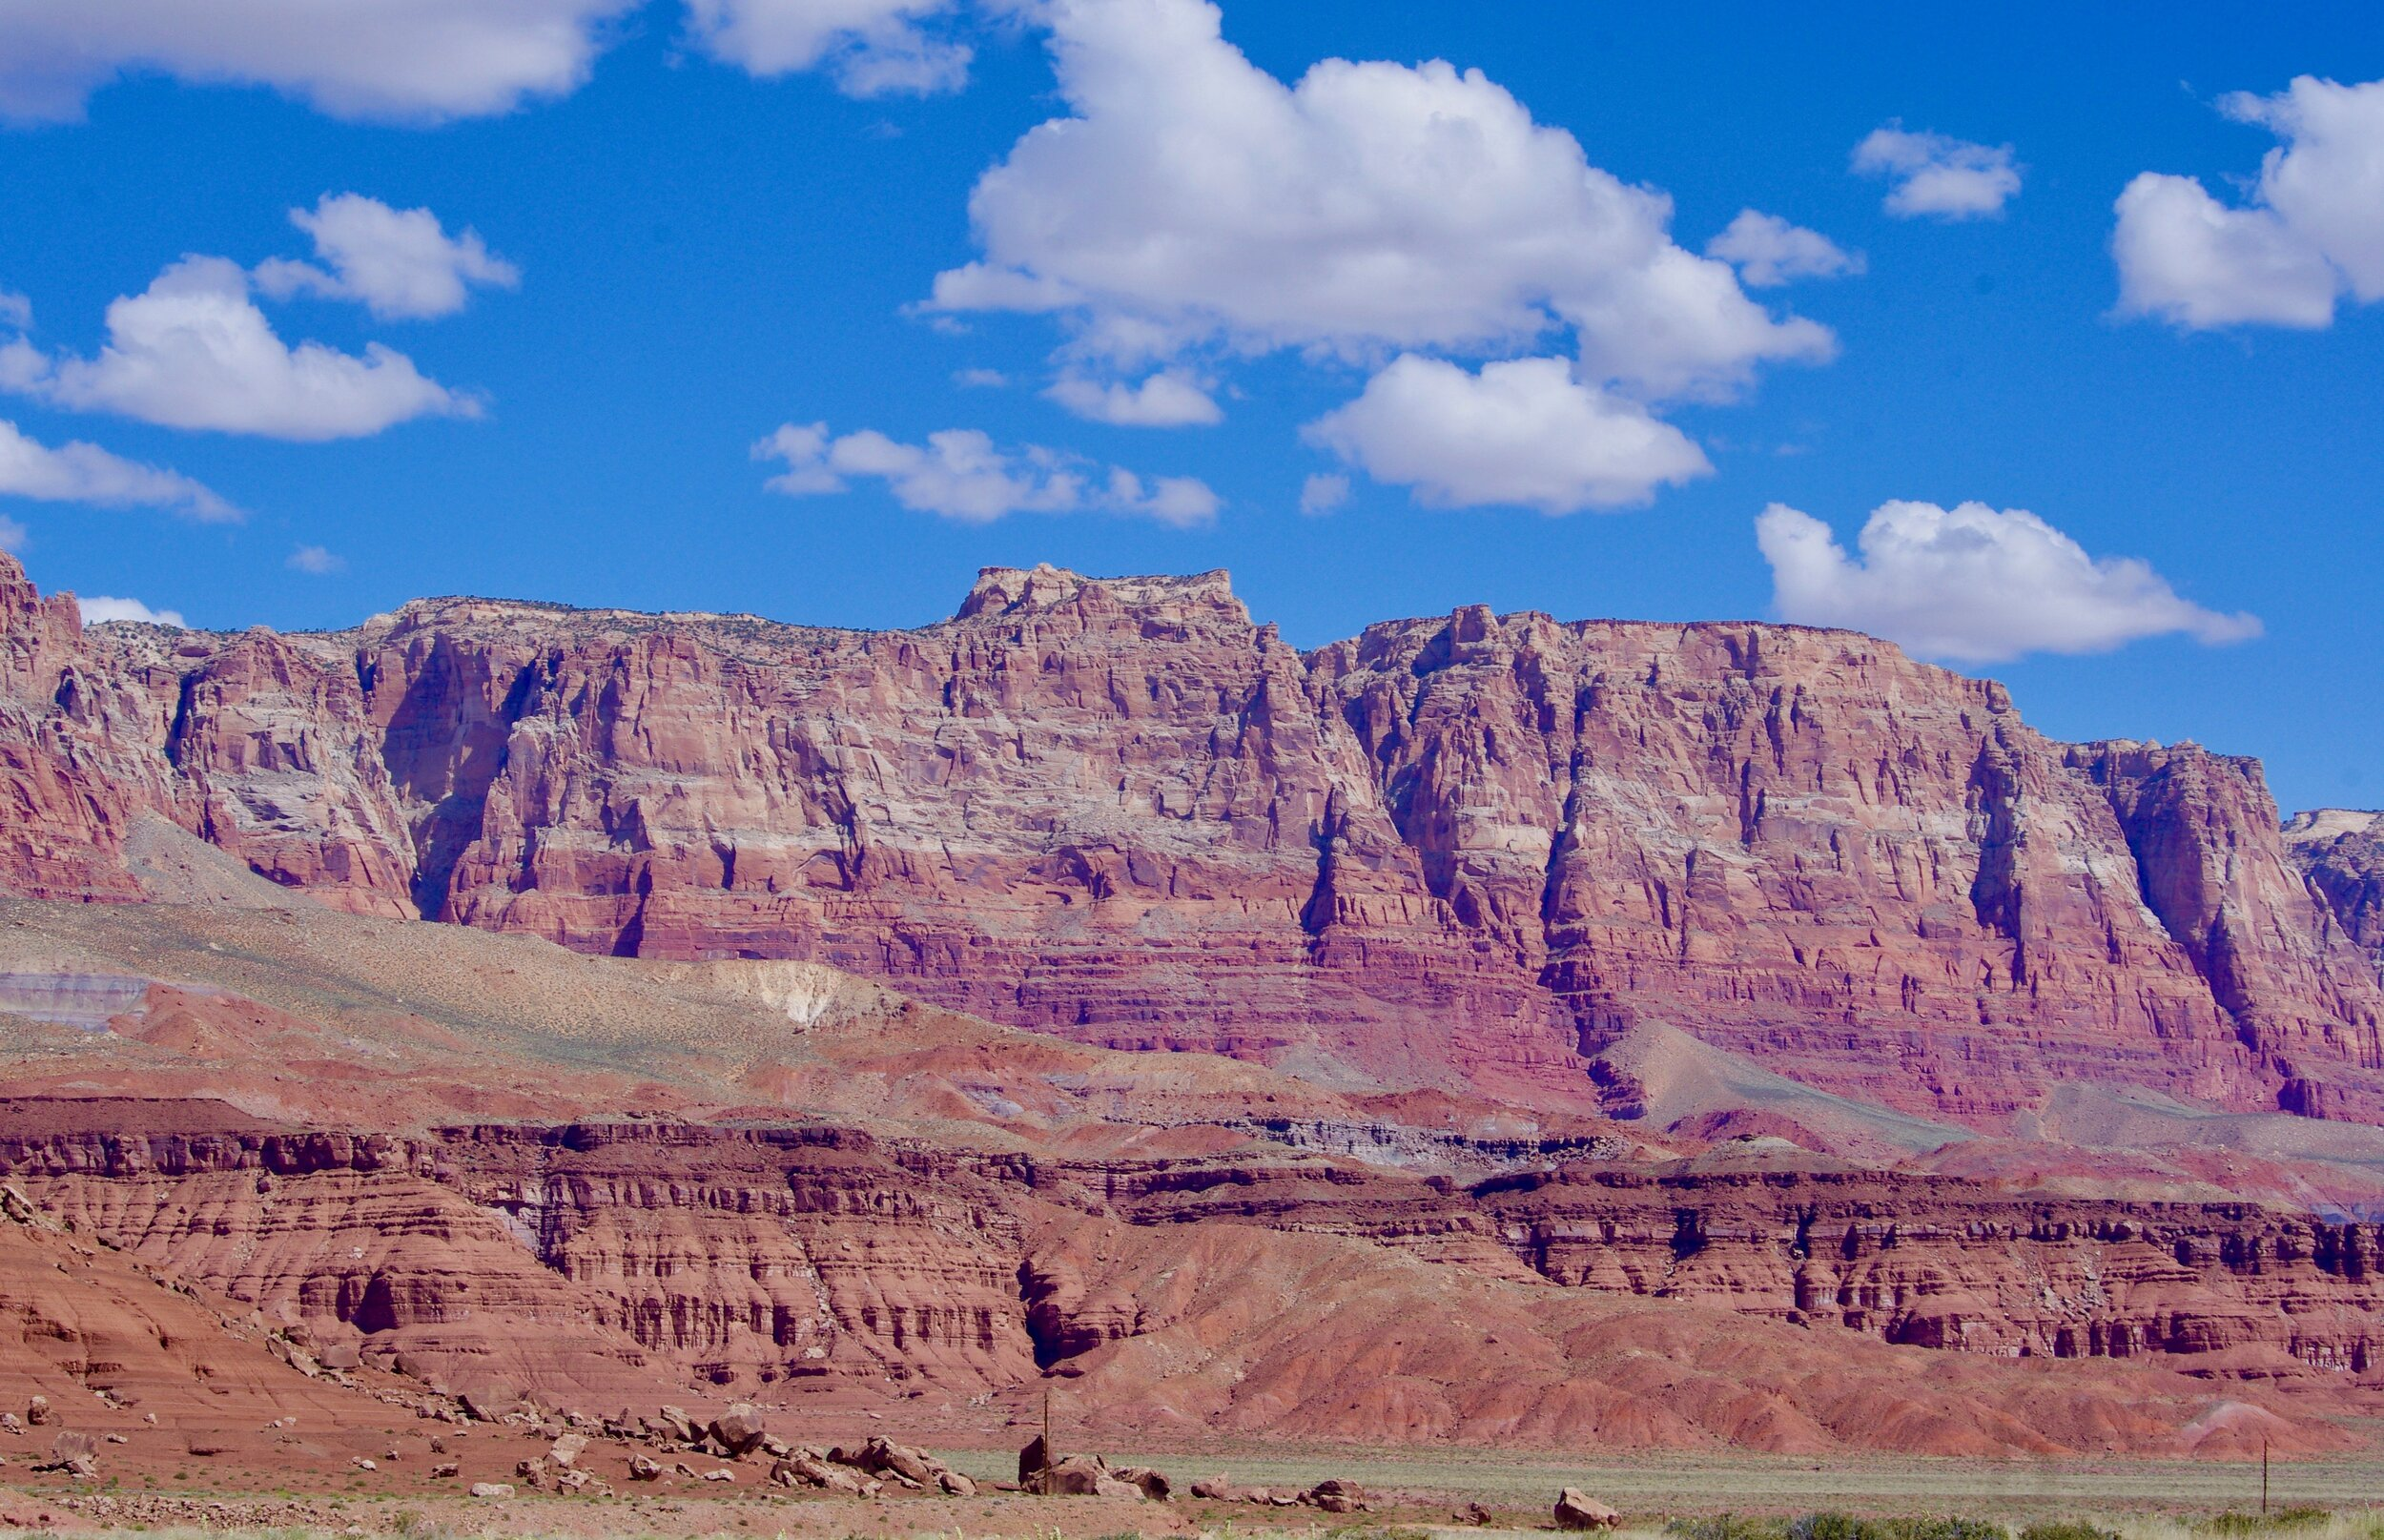 Here are some of the vermillion cliffs looking characteristically vermillion